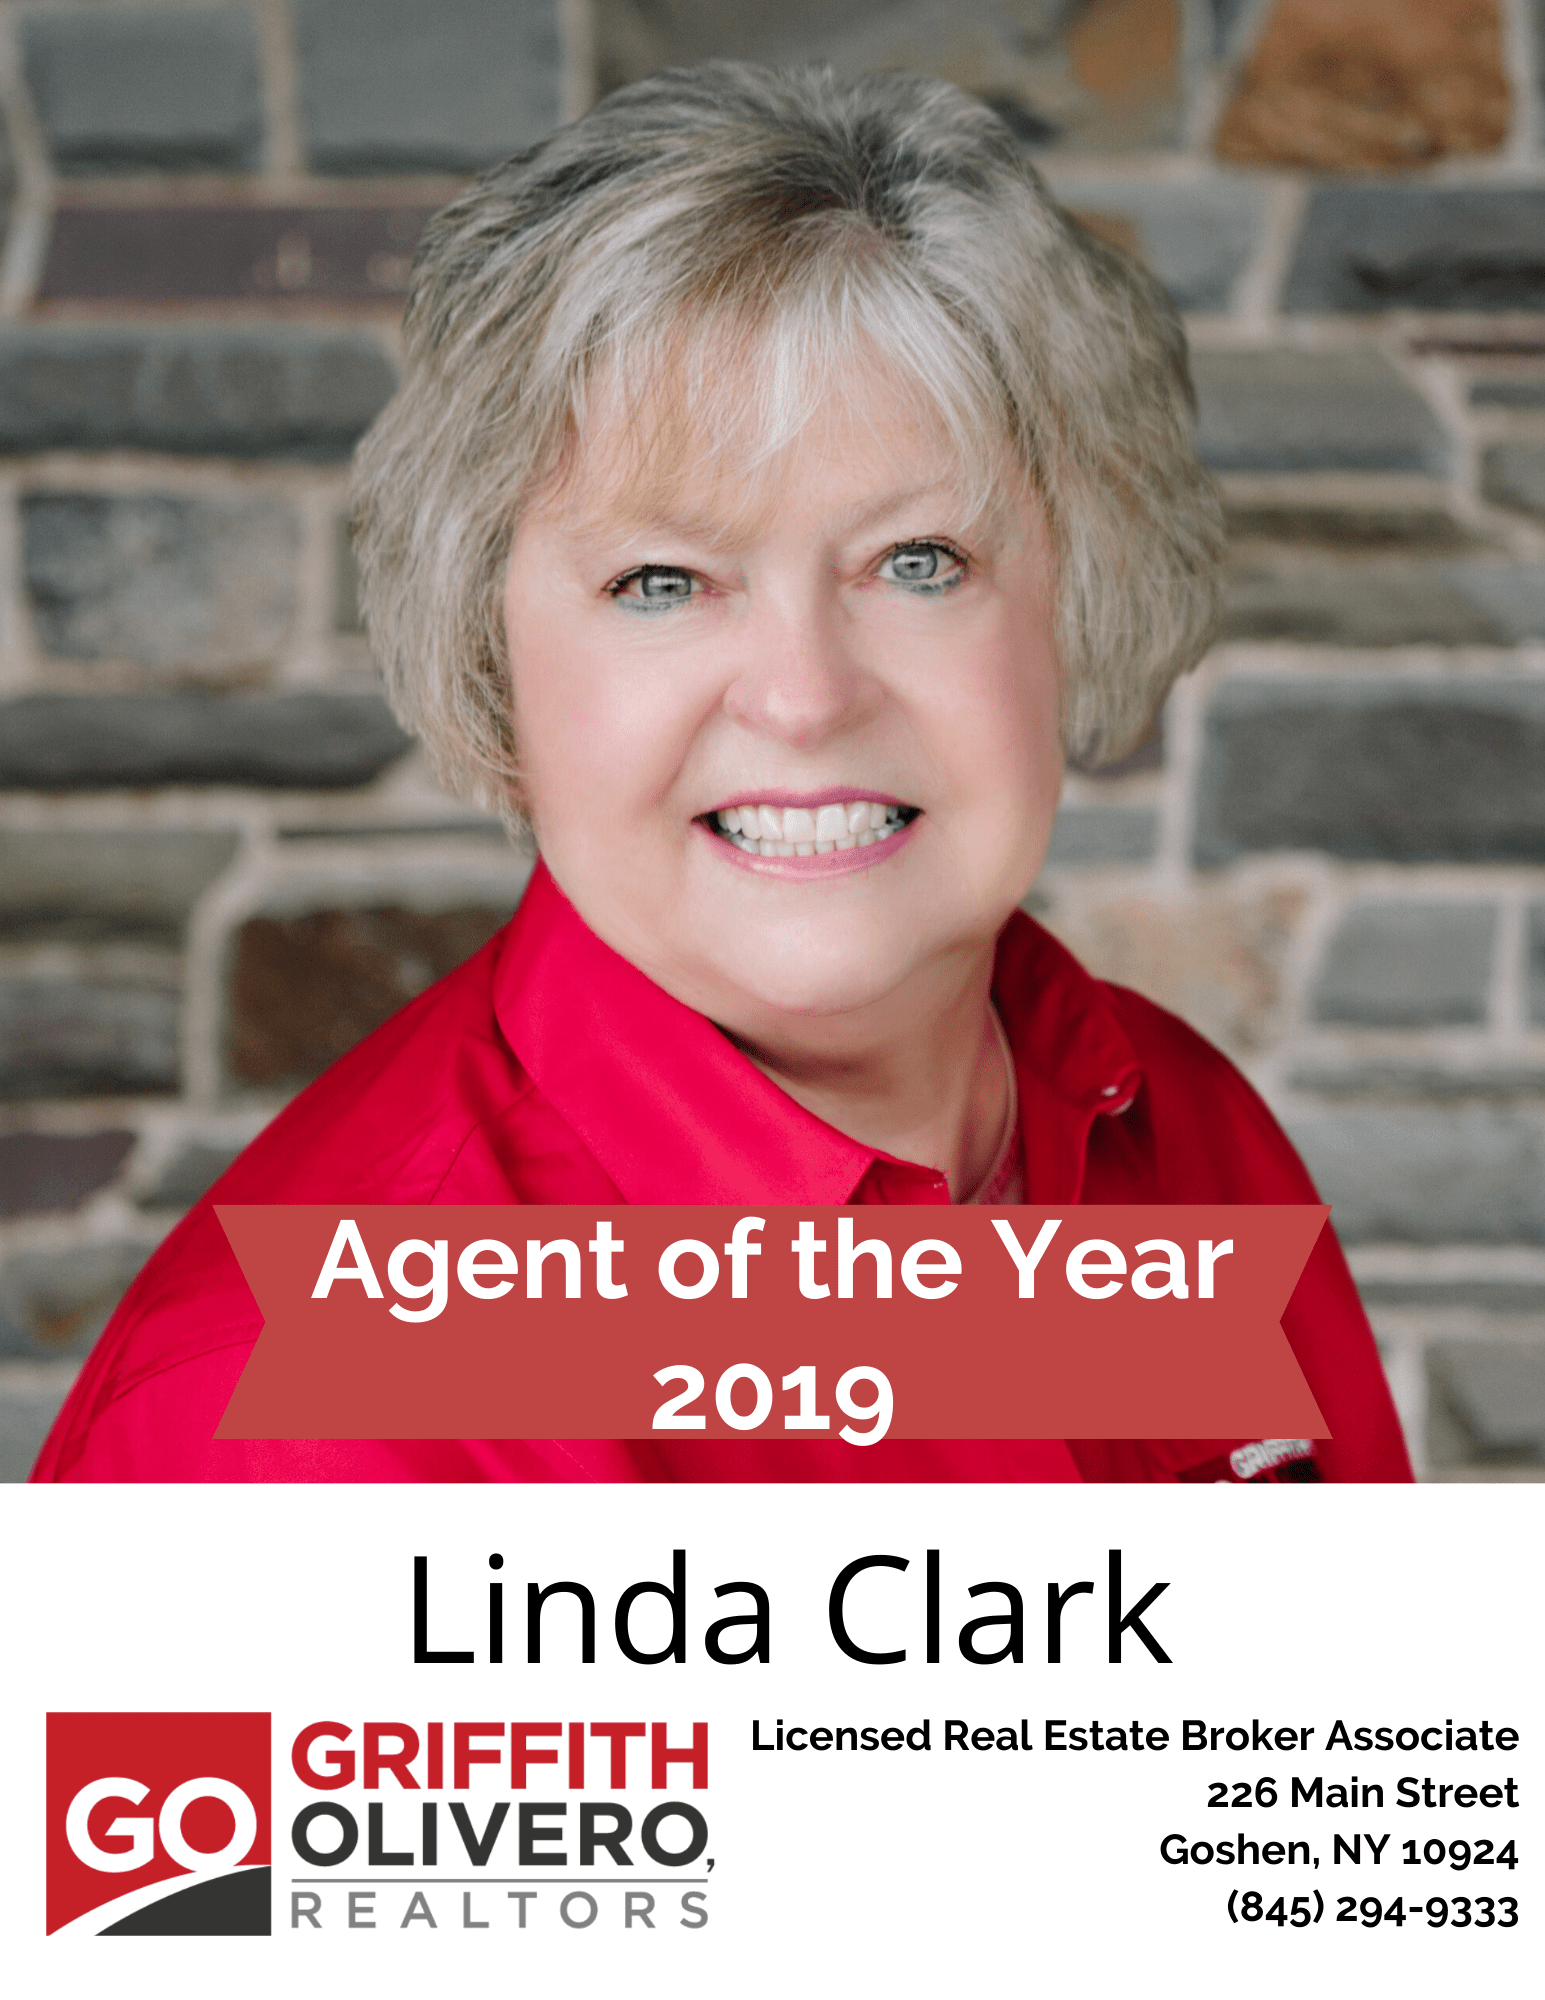 Agent of the Year 2019